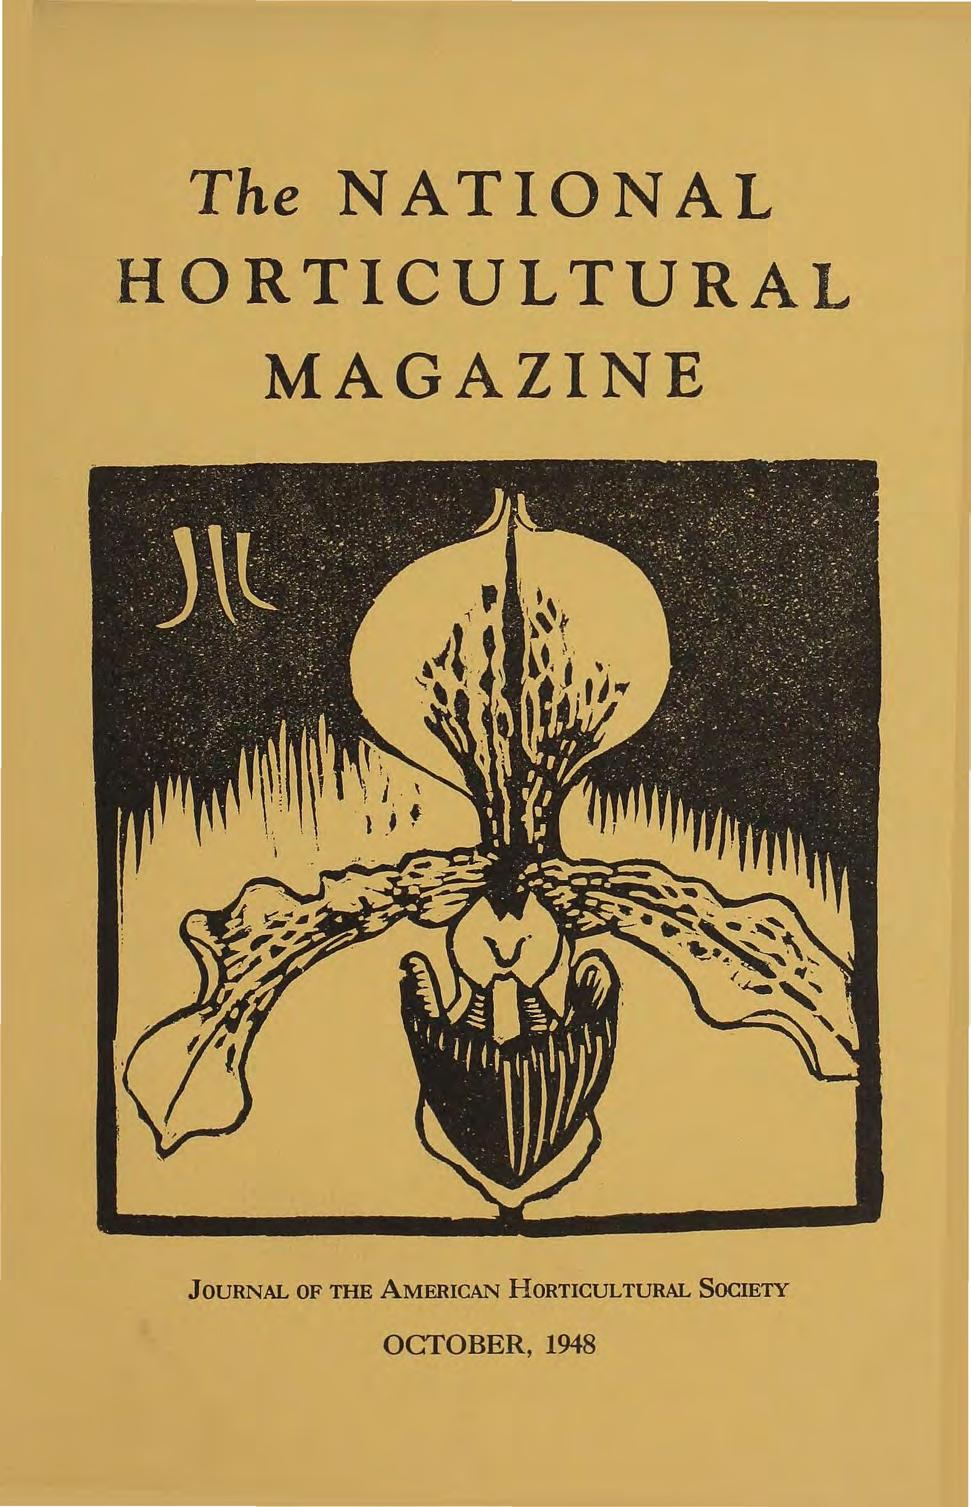 The NATIONAL HORTICULTURAL MAGAZINE JOURNAL OF